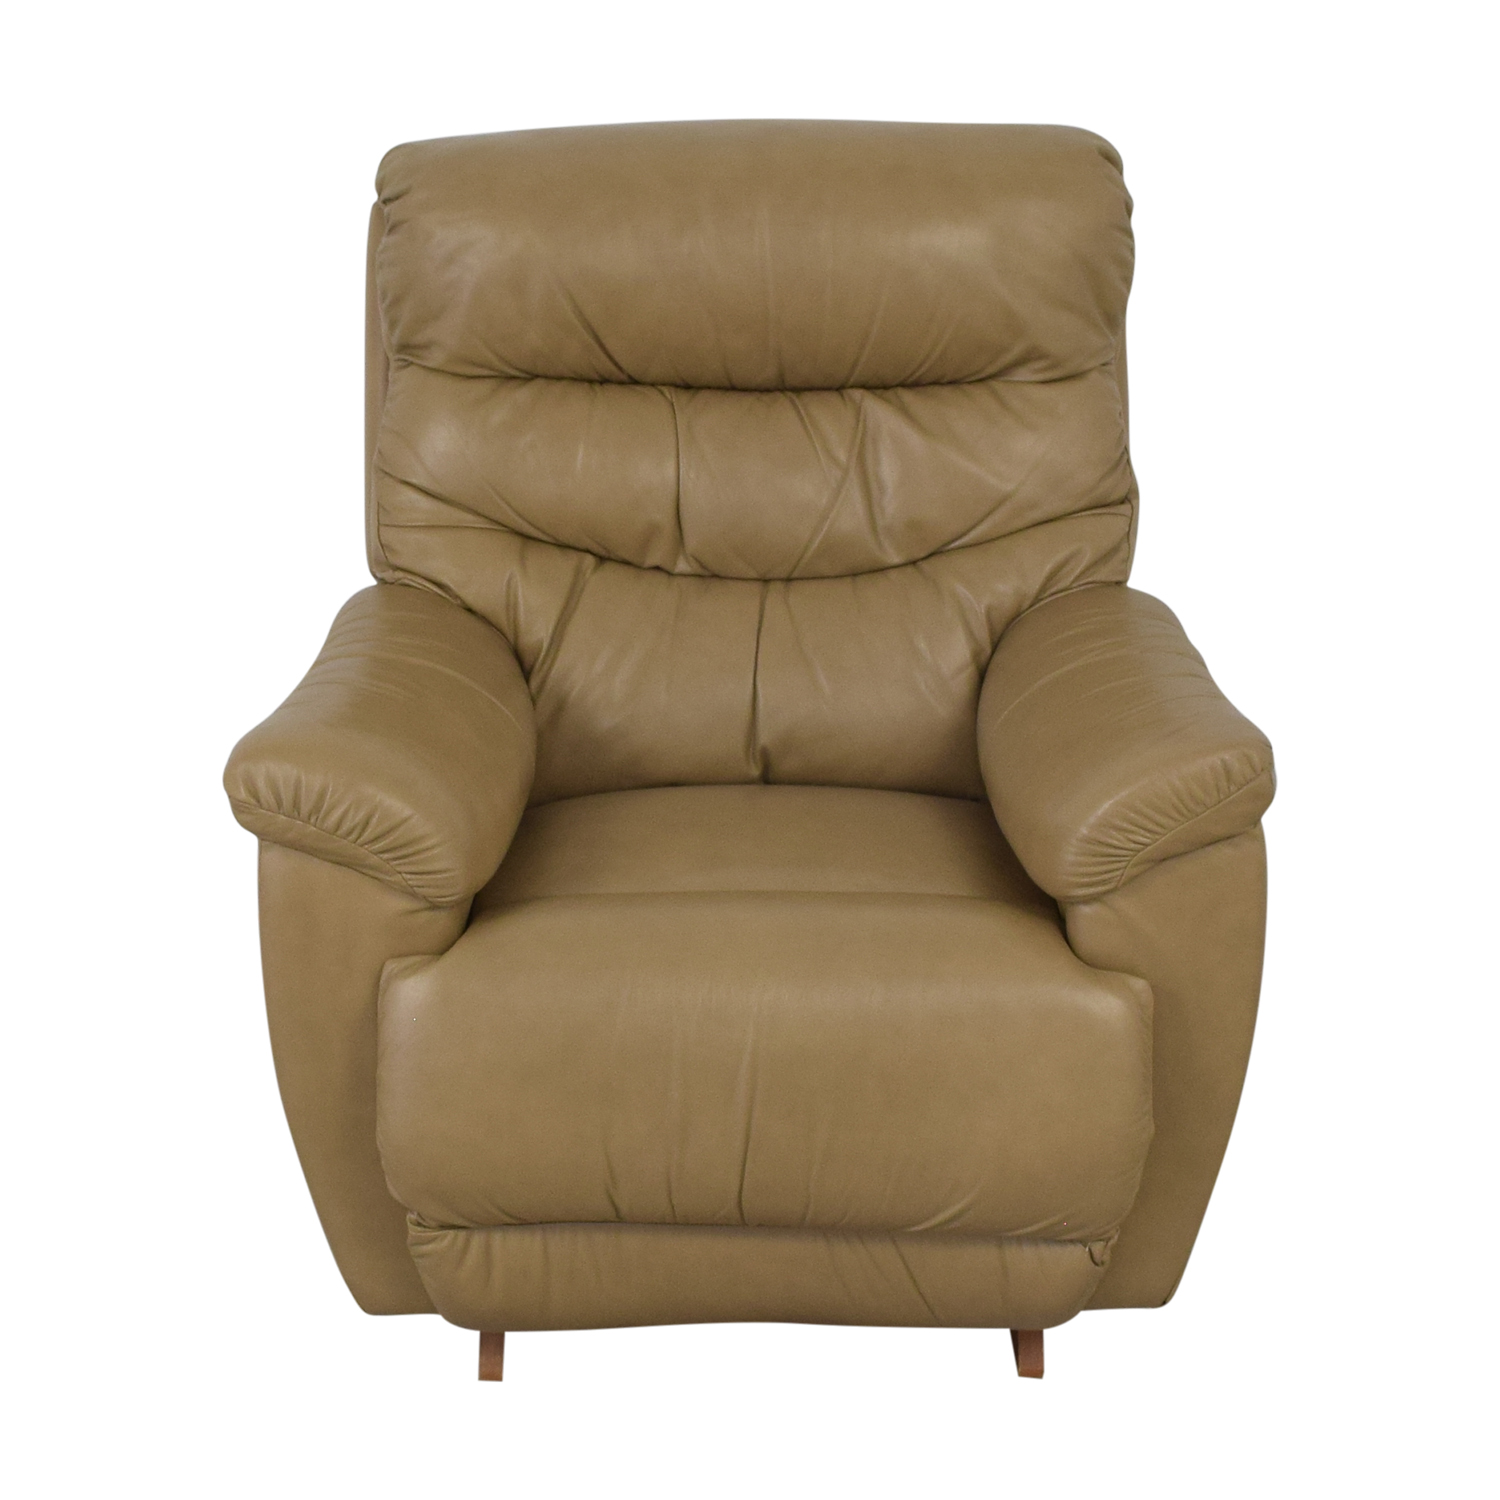 La-Z-Boy Leather Recliner / Recliners